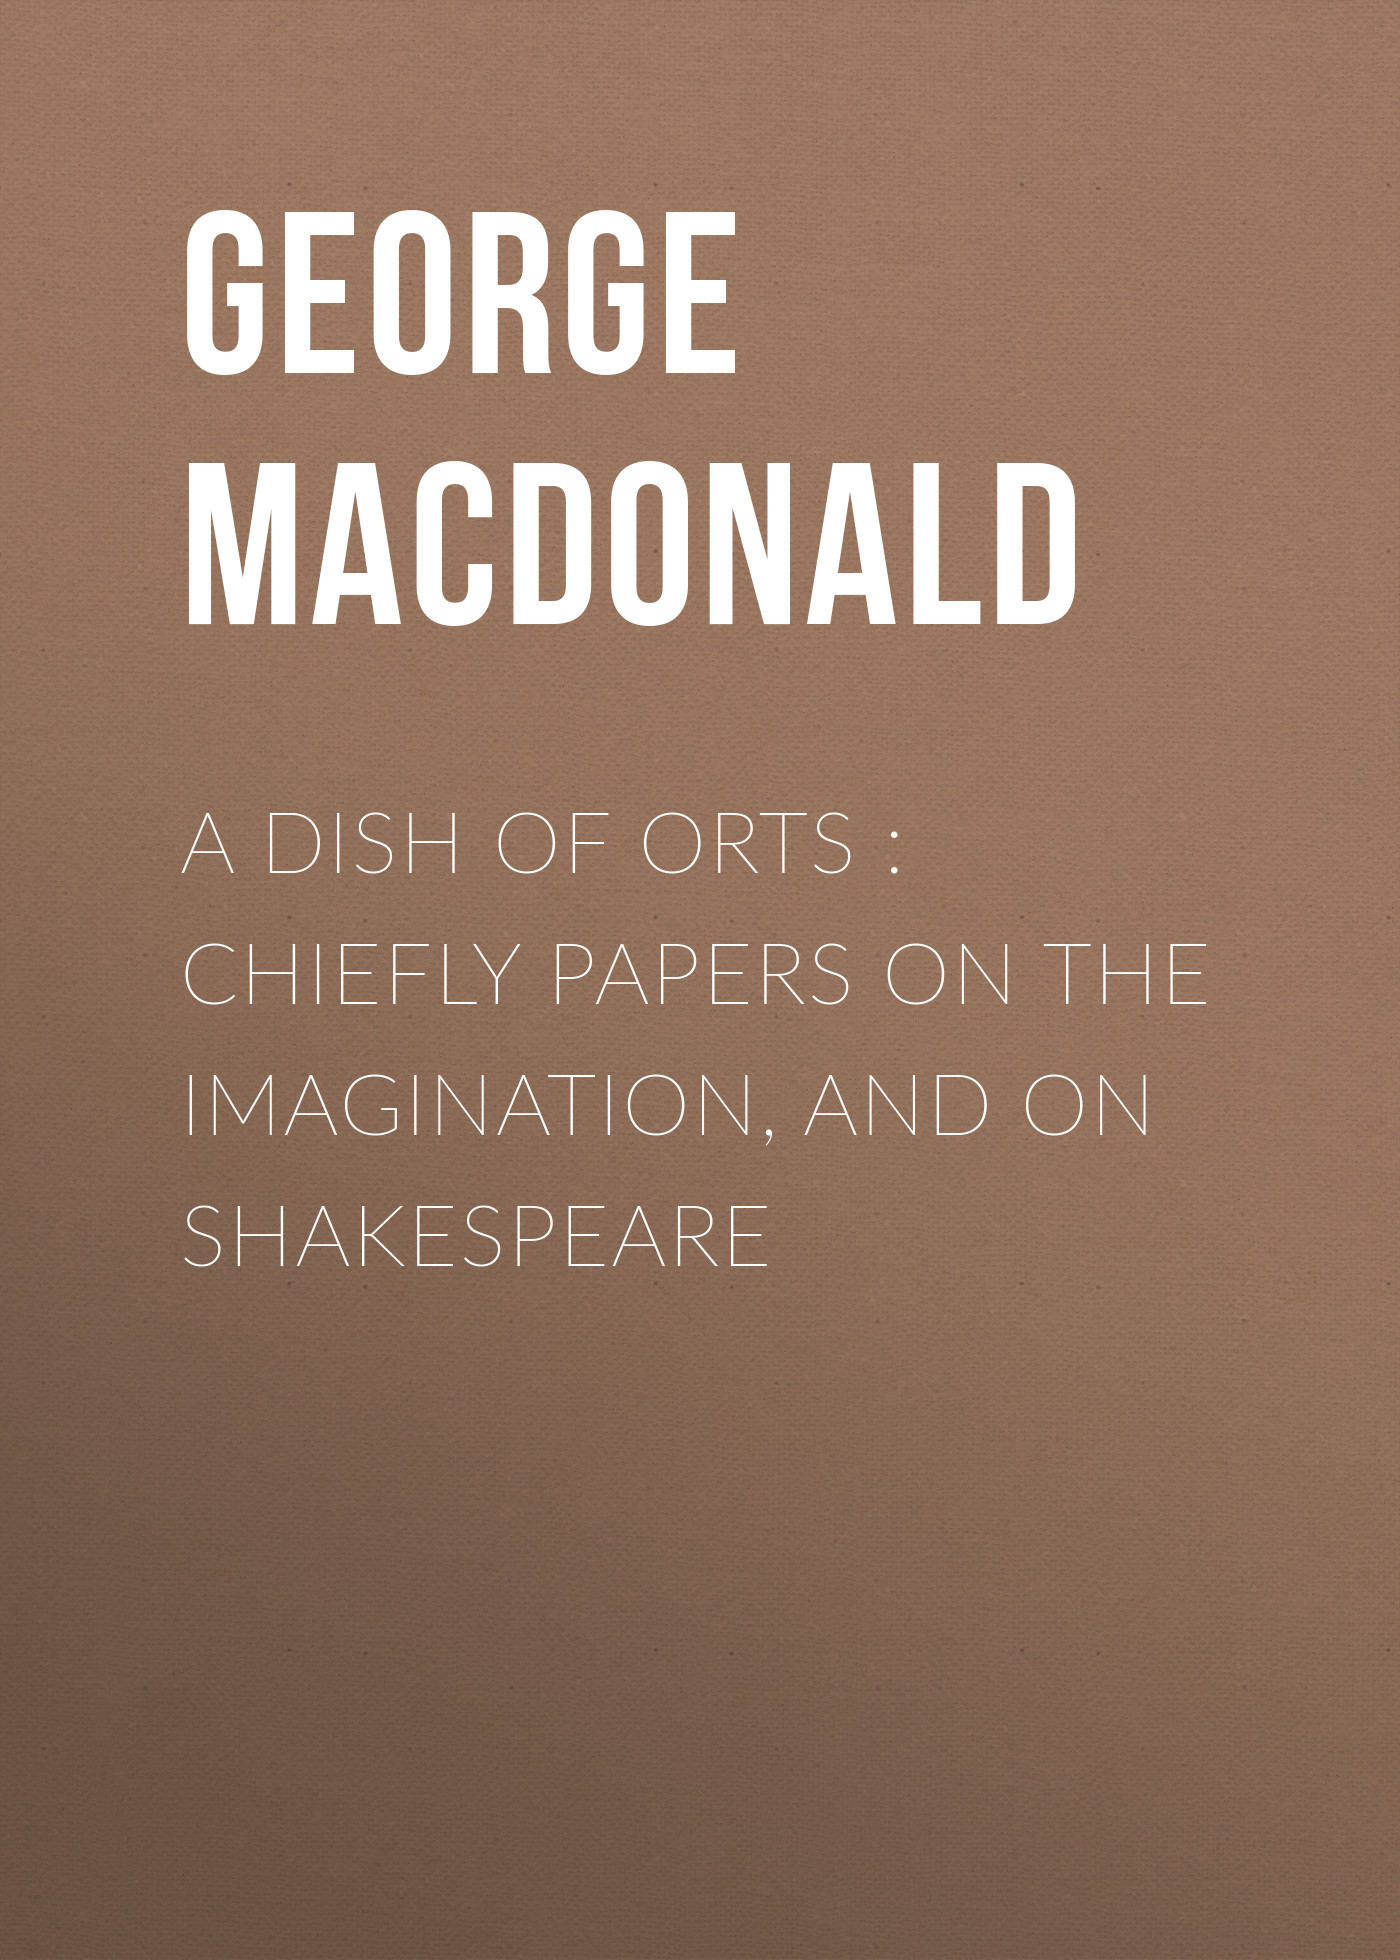 George MacDonald A Dish of Orts : Chiefly Papers on the Imagination, and on Shakespeare imagination